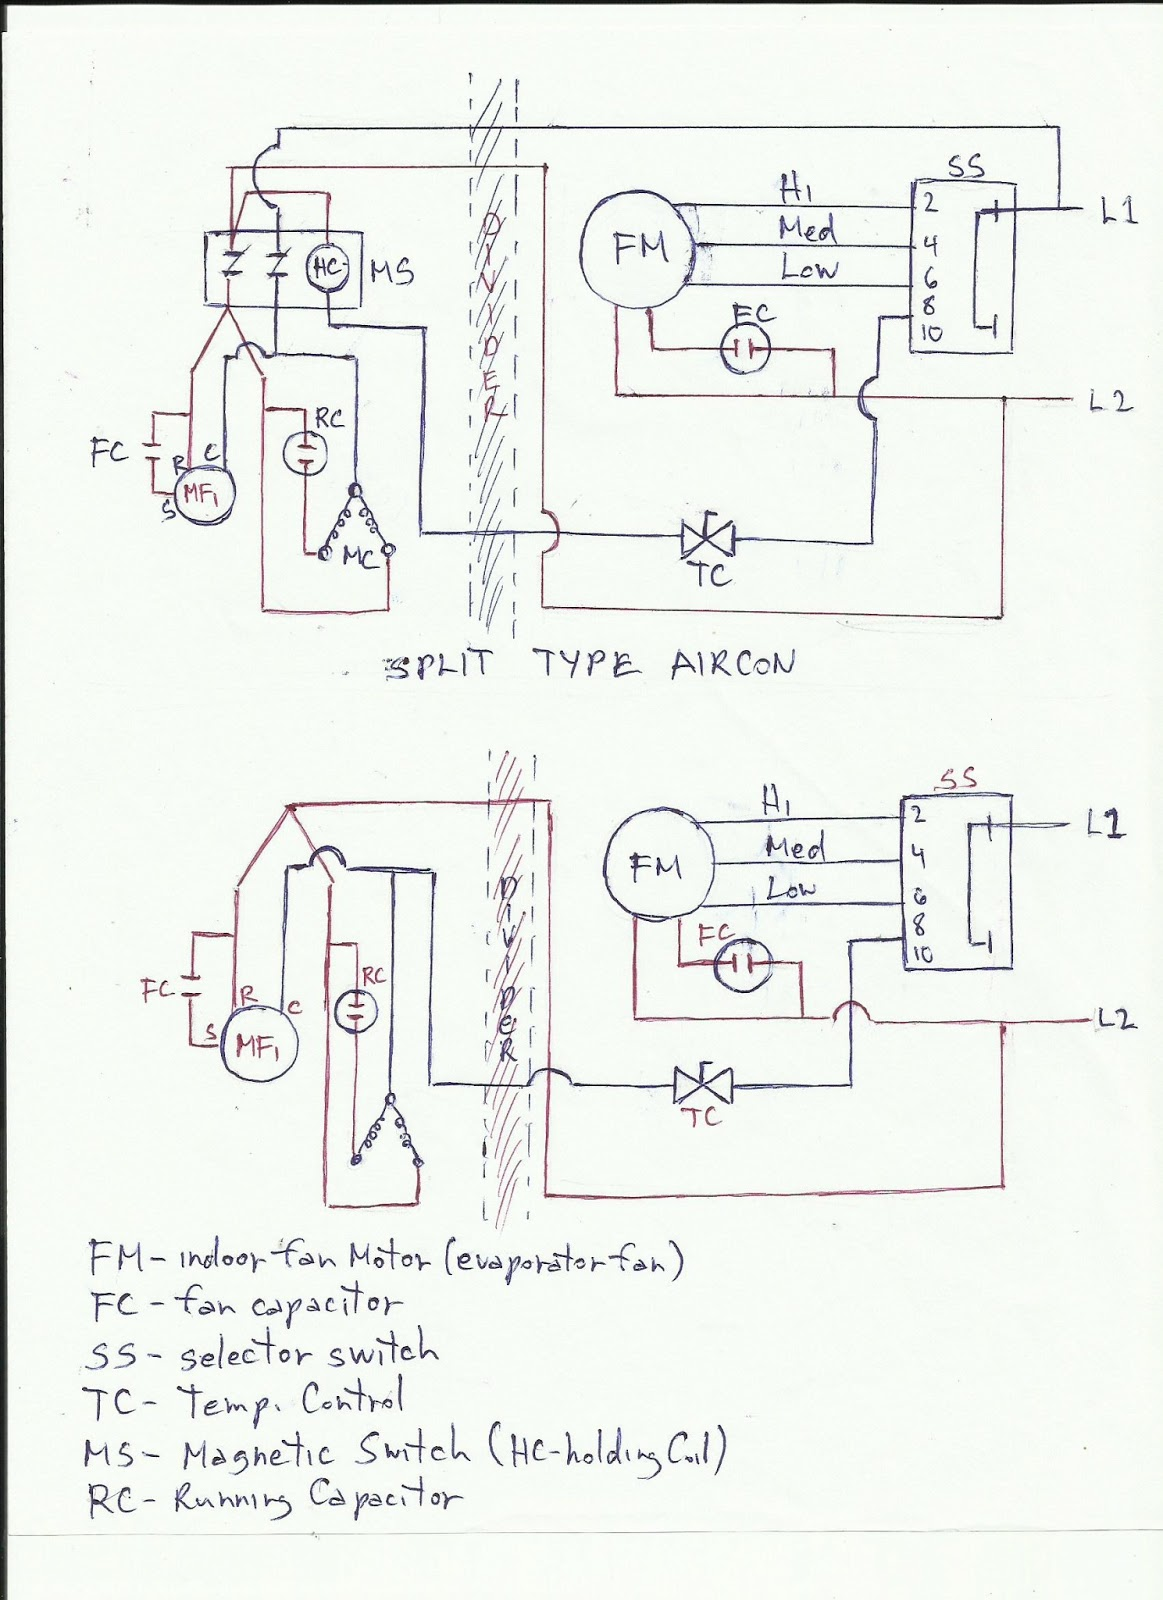 Extraordinary Pocket Rocket Engine Diagram Images - Best Image ...